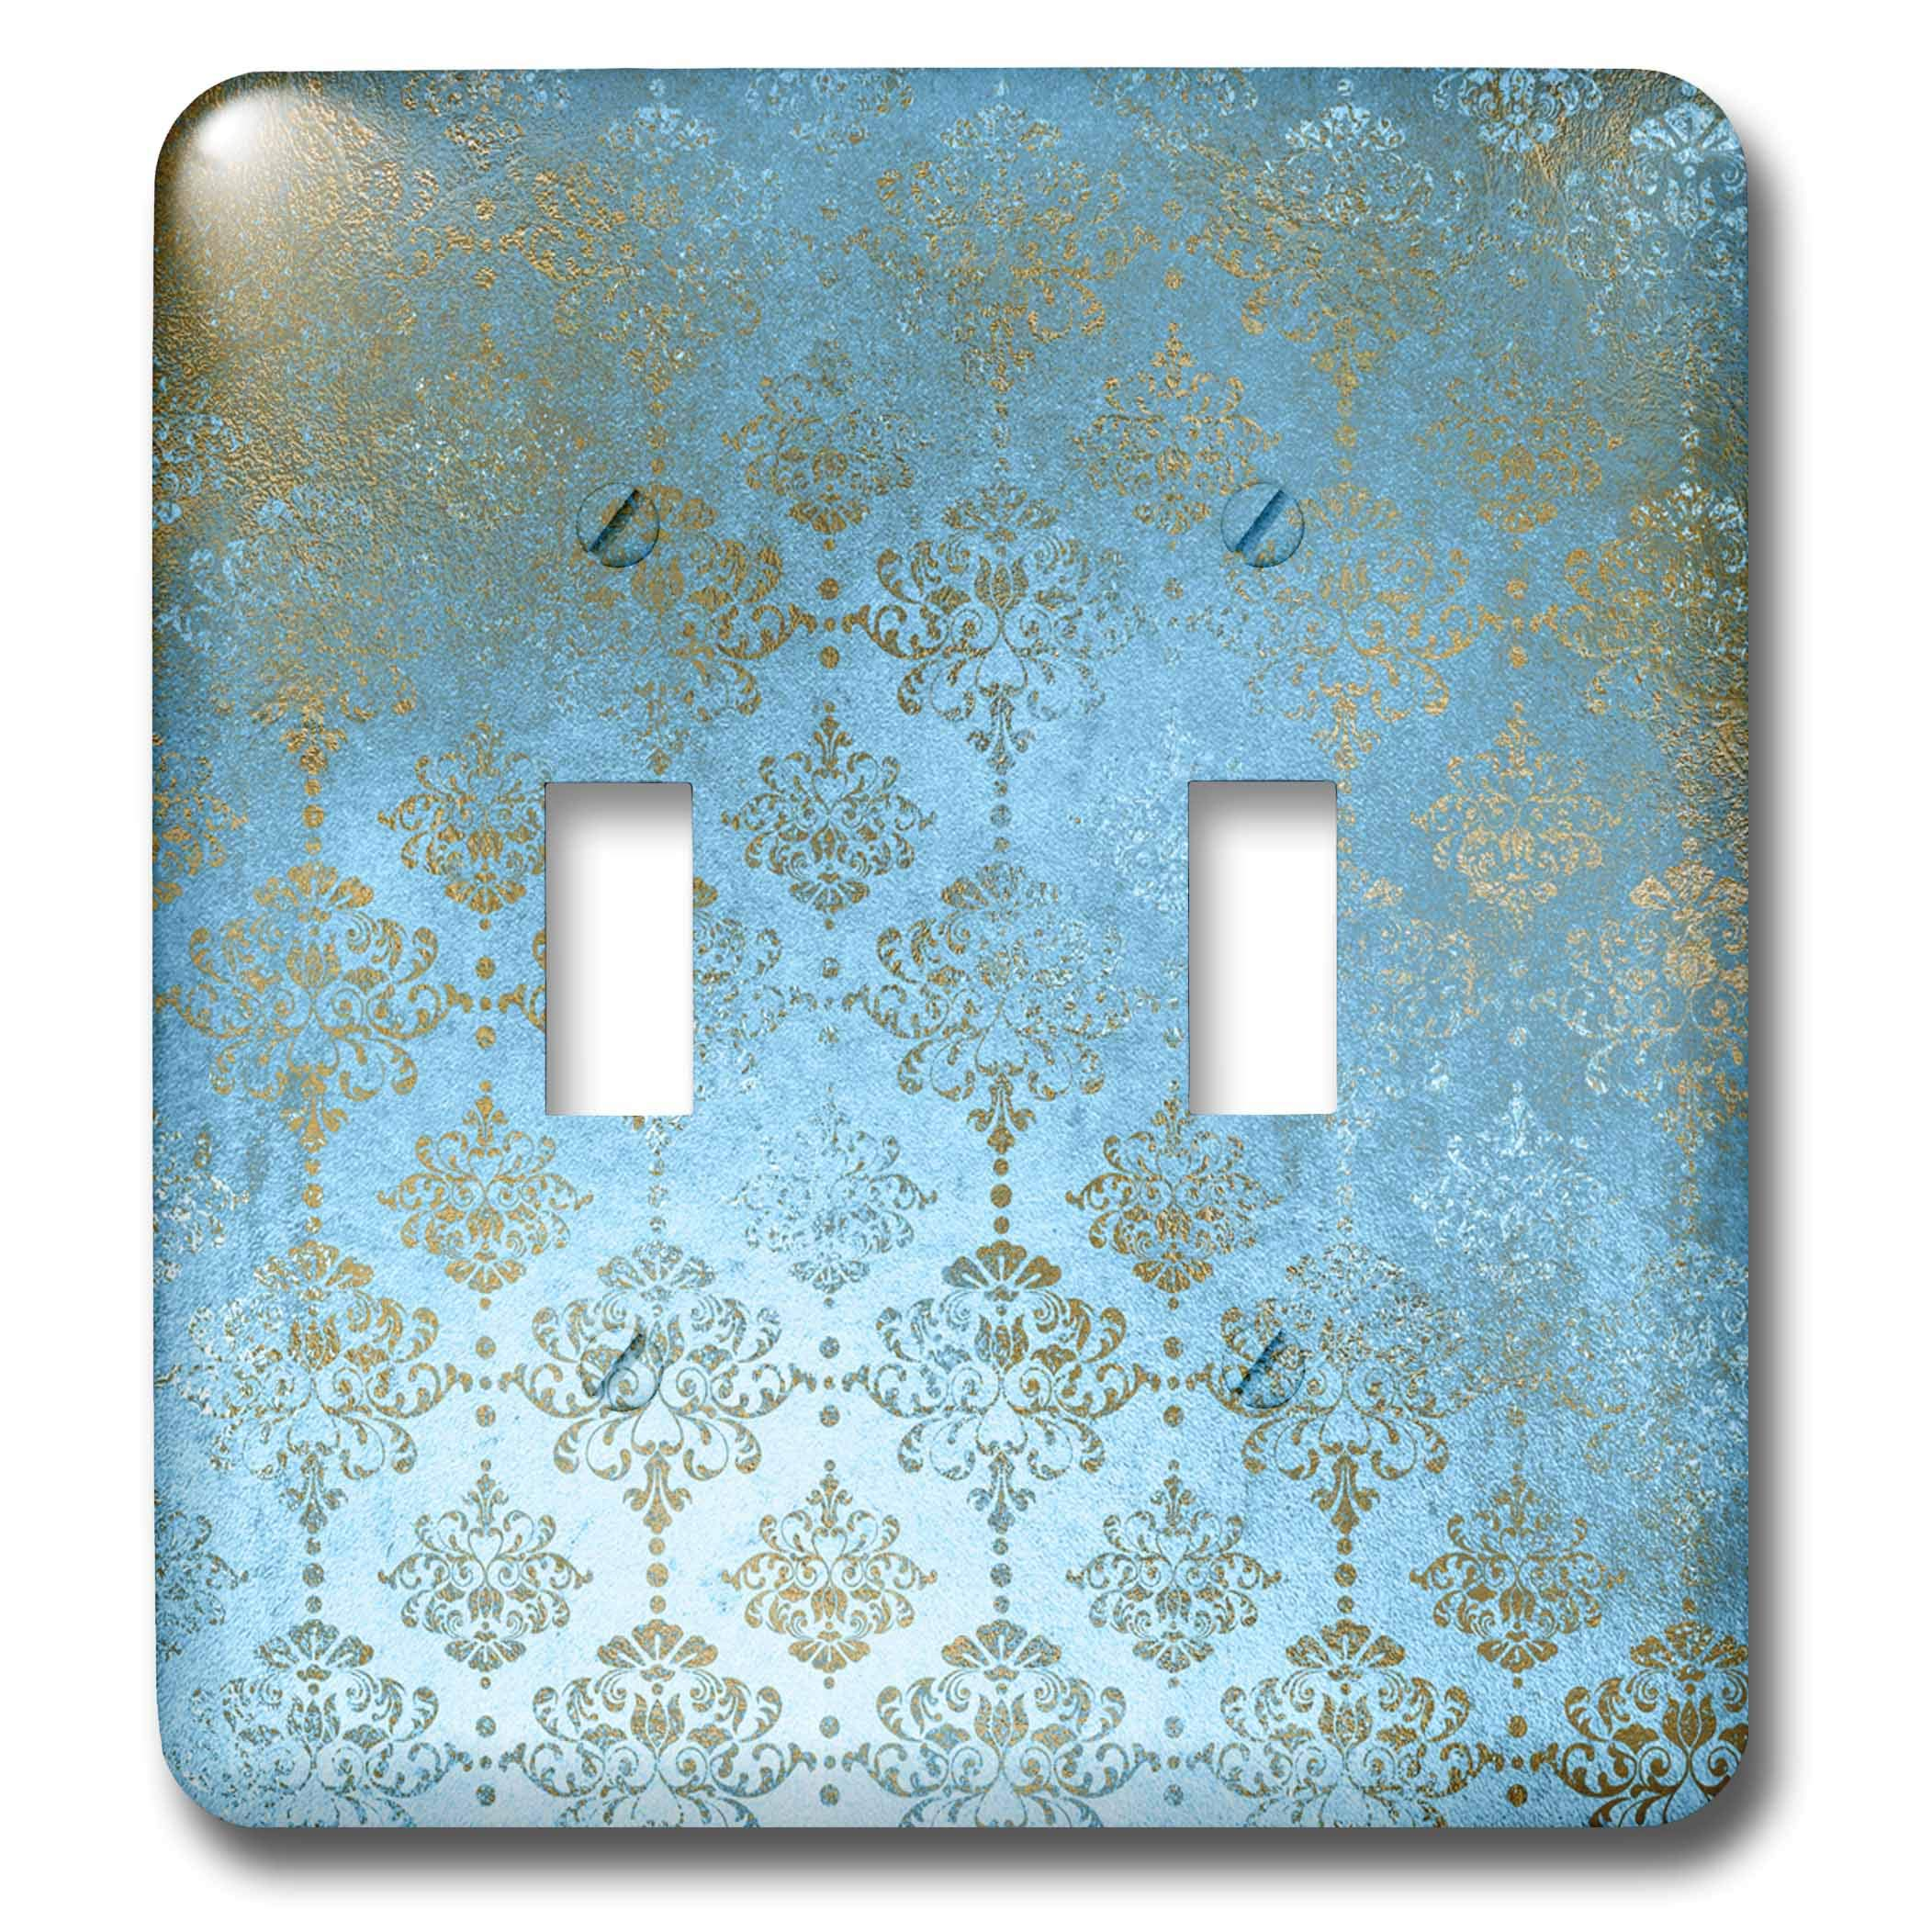 3dRose Uta Naumann Faux Glitter Pattern - Image of Sky Blue and Gold Metal Foil Vintage Grunge Luxury Damask Pattern - Light Switch Covers - double toggle switch (lsp_290169_2) by 3dRose (Image #1)